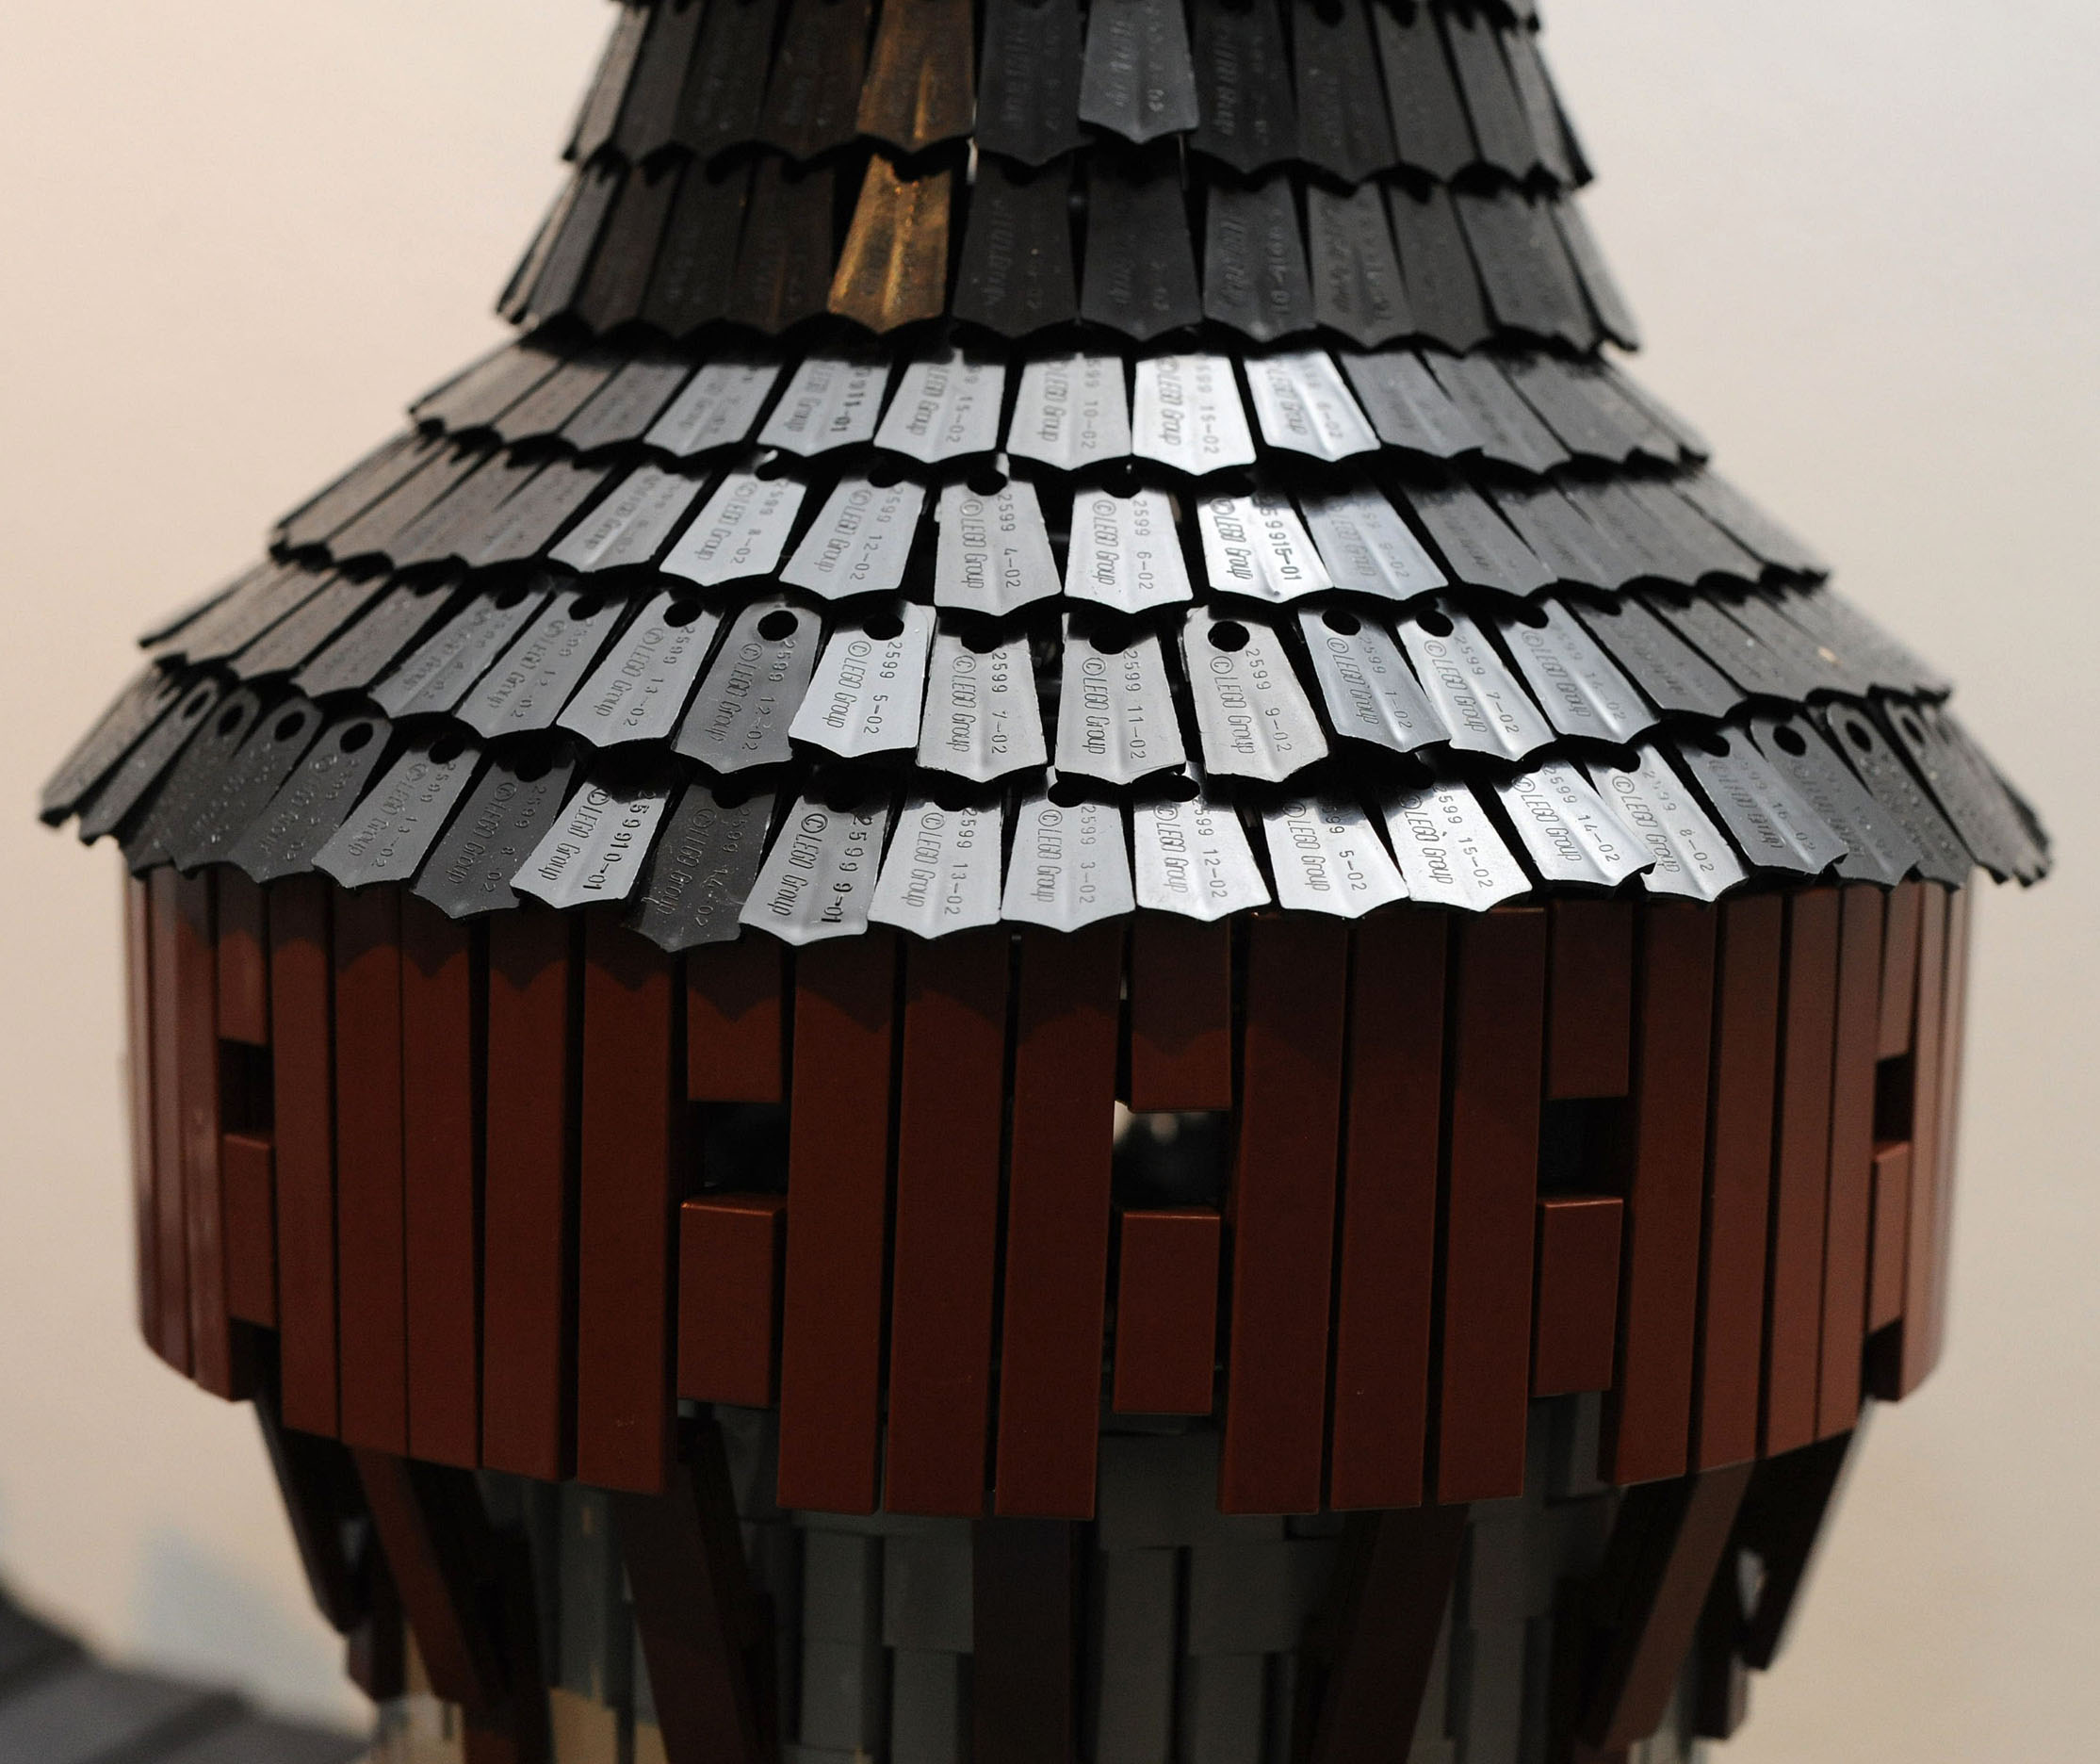 Flipper roof technique how to general lego discussion for Roofing forum